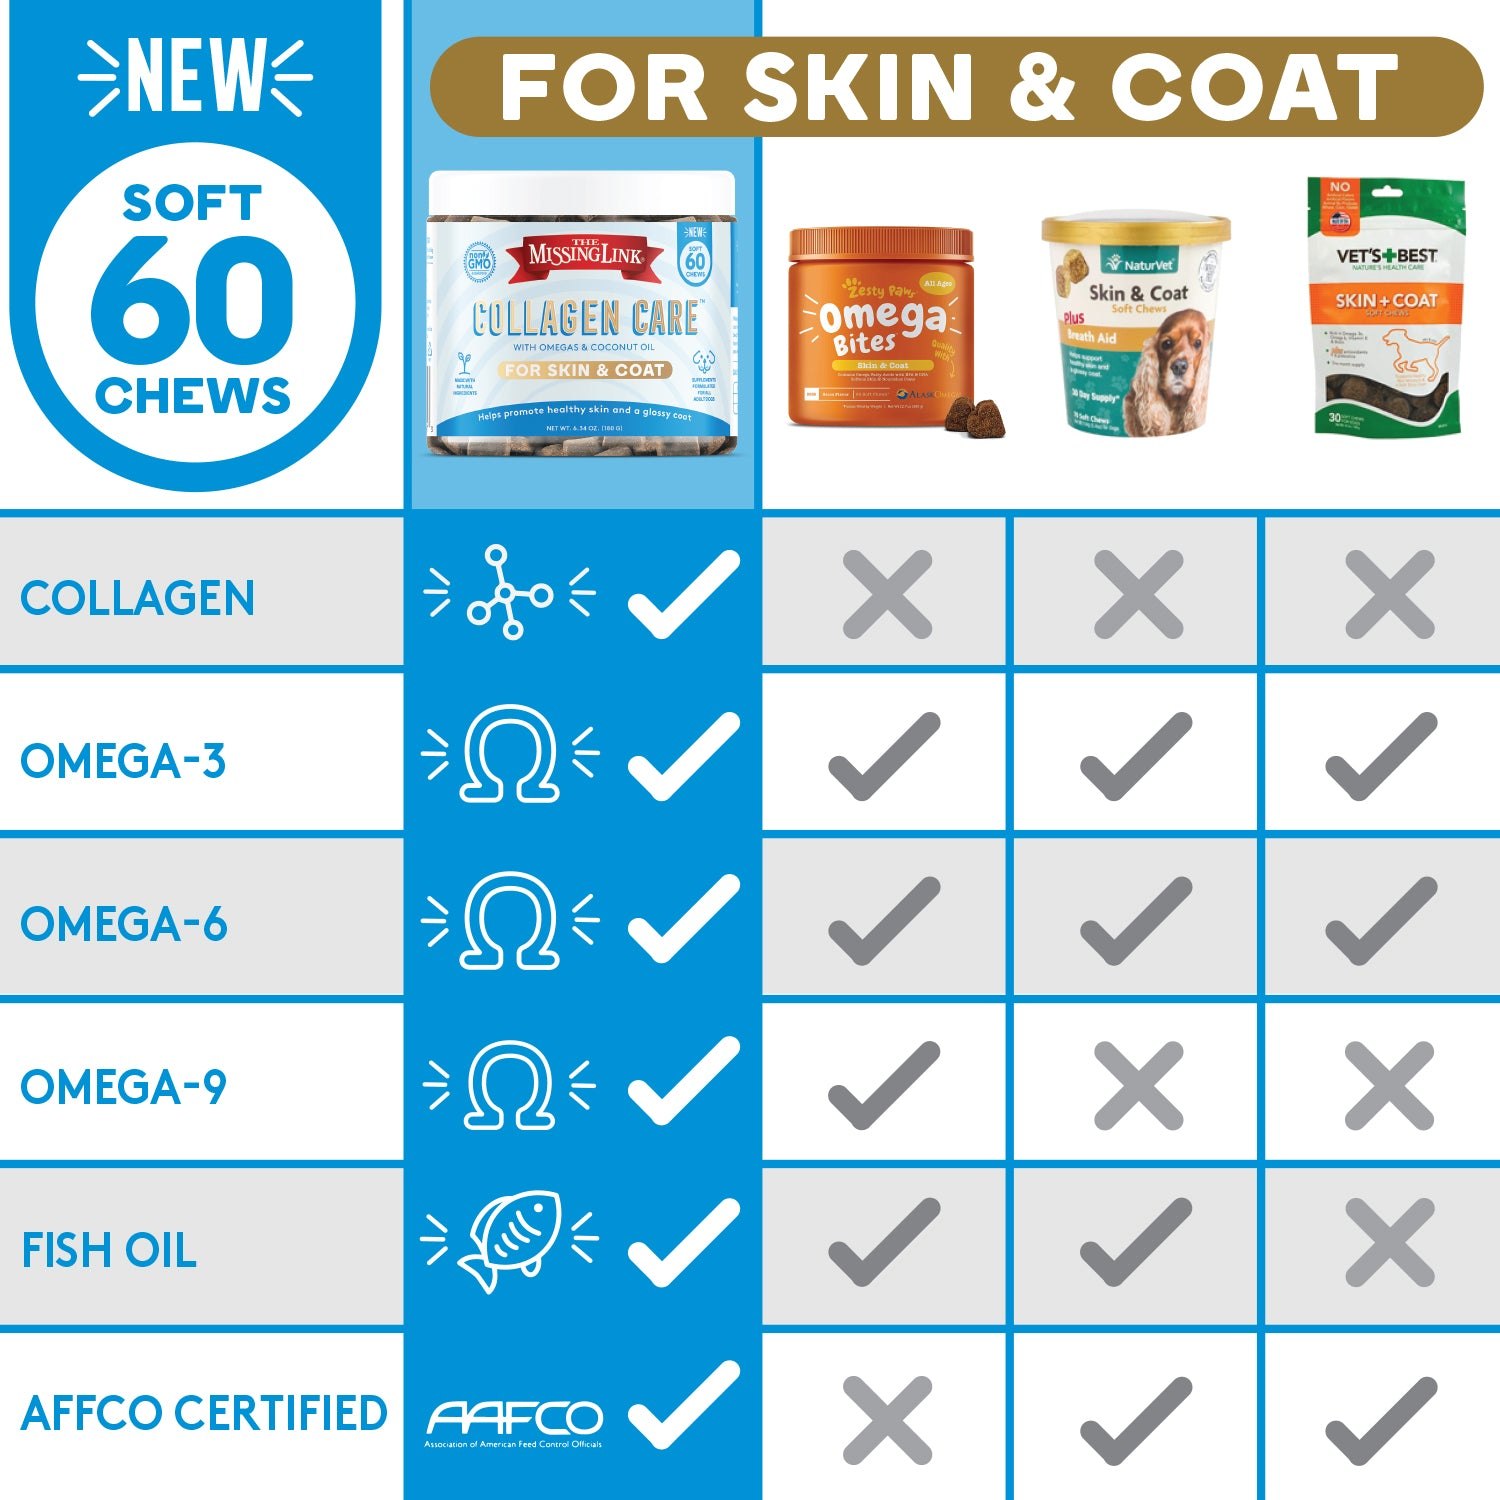 Collagen Care Skin & Coat chart